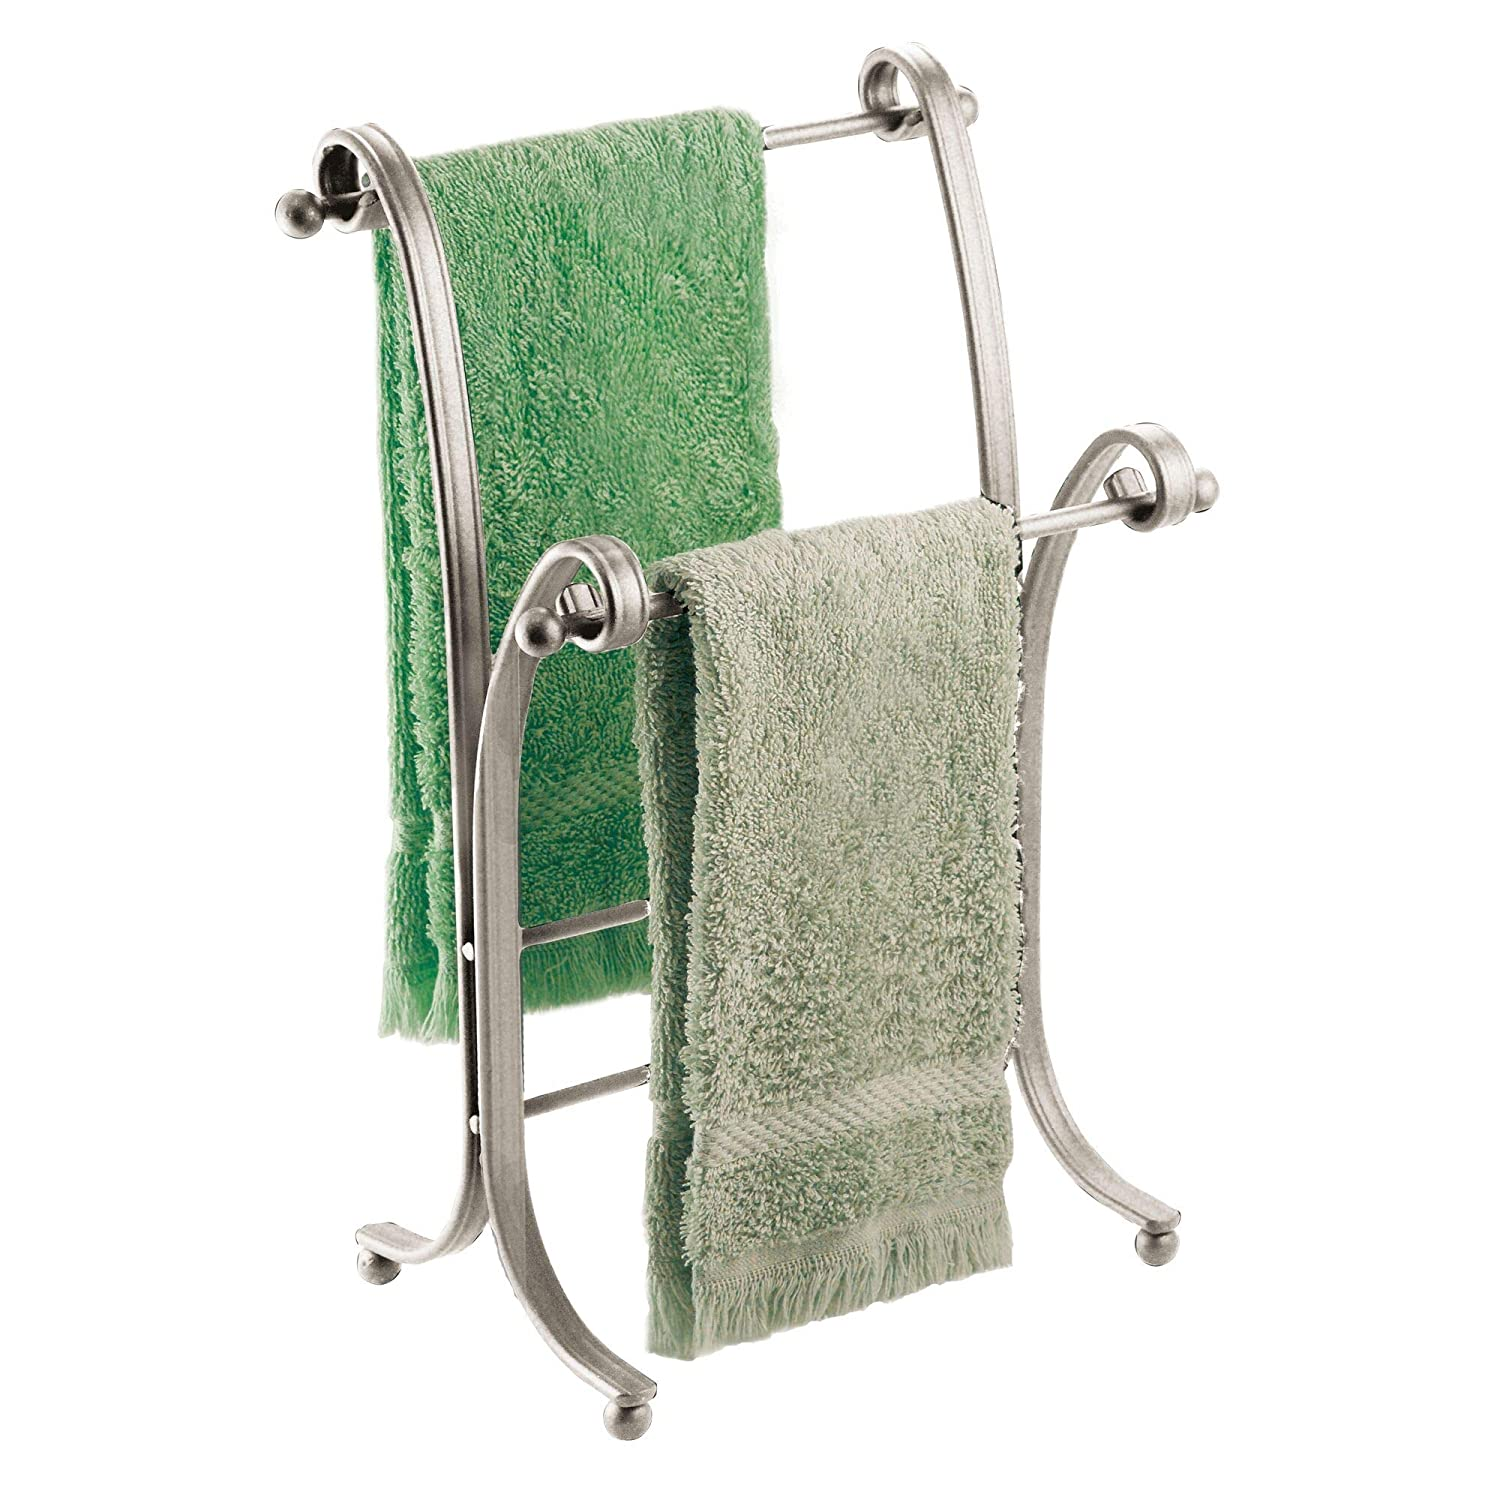 """iDesign York Metal Free-Standing Hand Towel Drying Rack for Master, Guest, Kids' Bathroom, Laundry Room, Kitchen, 6"""" x 9"""" x 13.5"""", Satin Silver"""